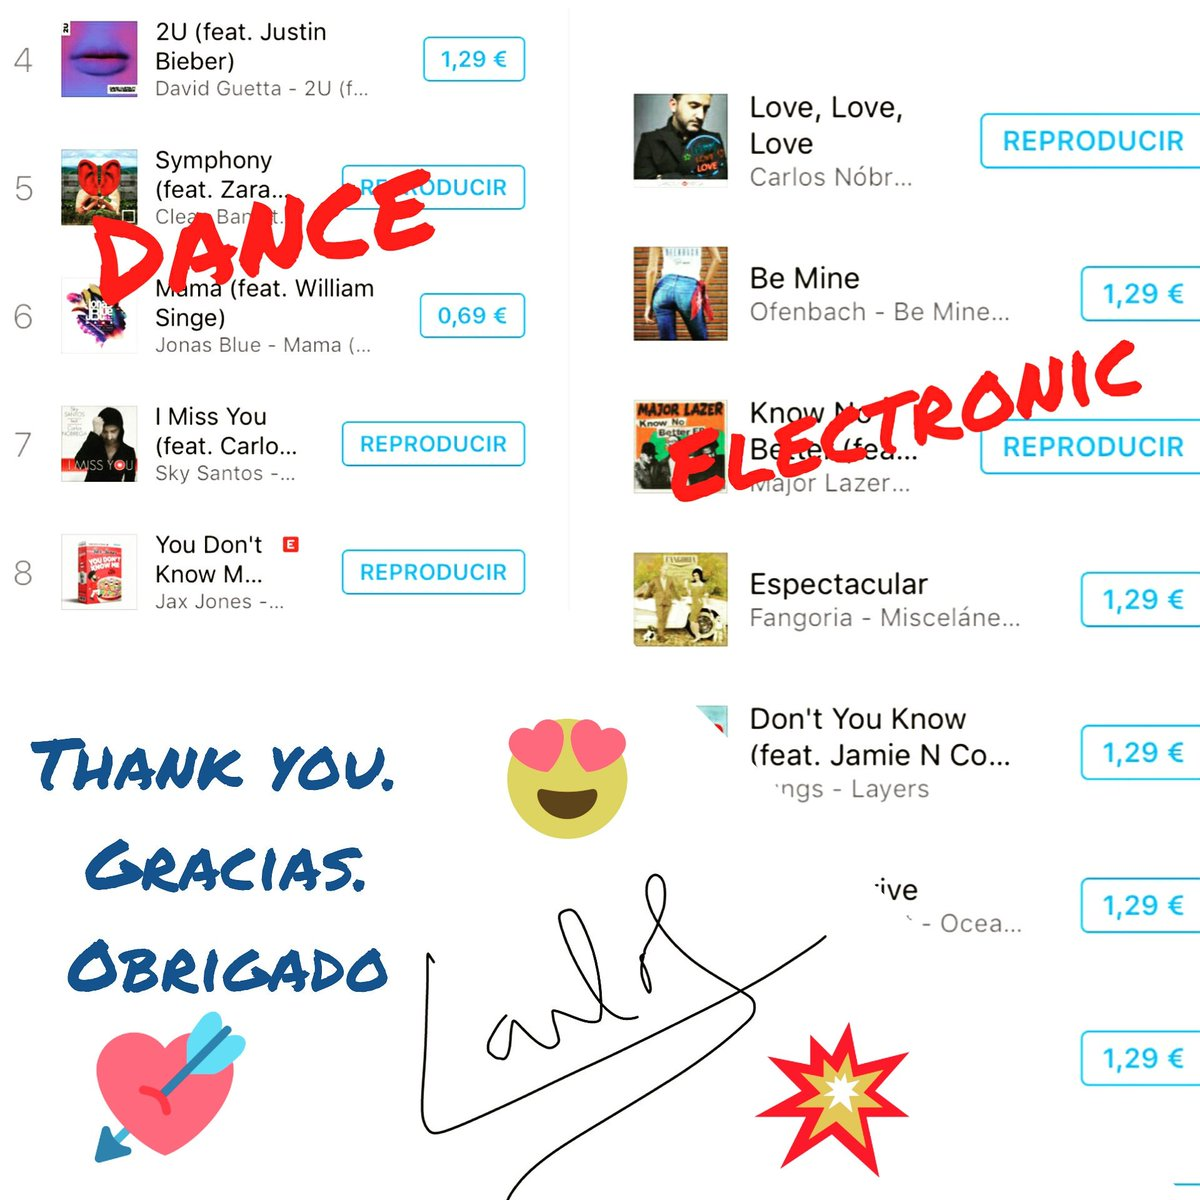 That is all   #LoveLoveLove  1  #Itunes Spain #Electronic   #IMissYou (4 years later ) * 7 #Dance   Download  Gracias #music #TAOML<br>http://pic.twitter.com/Ul4dqVkanM